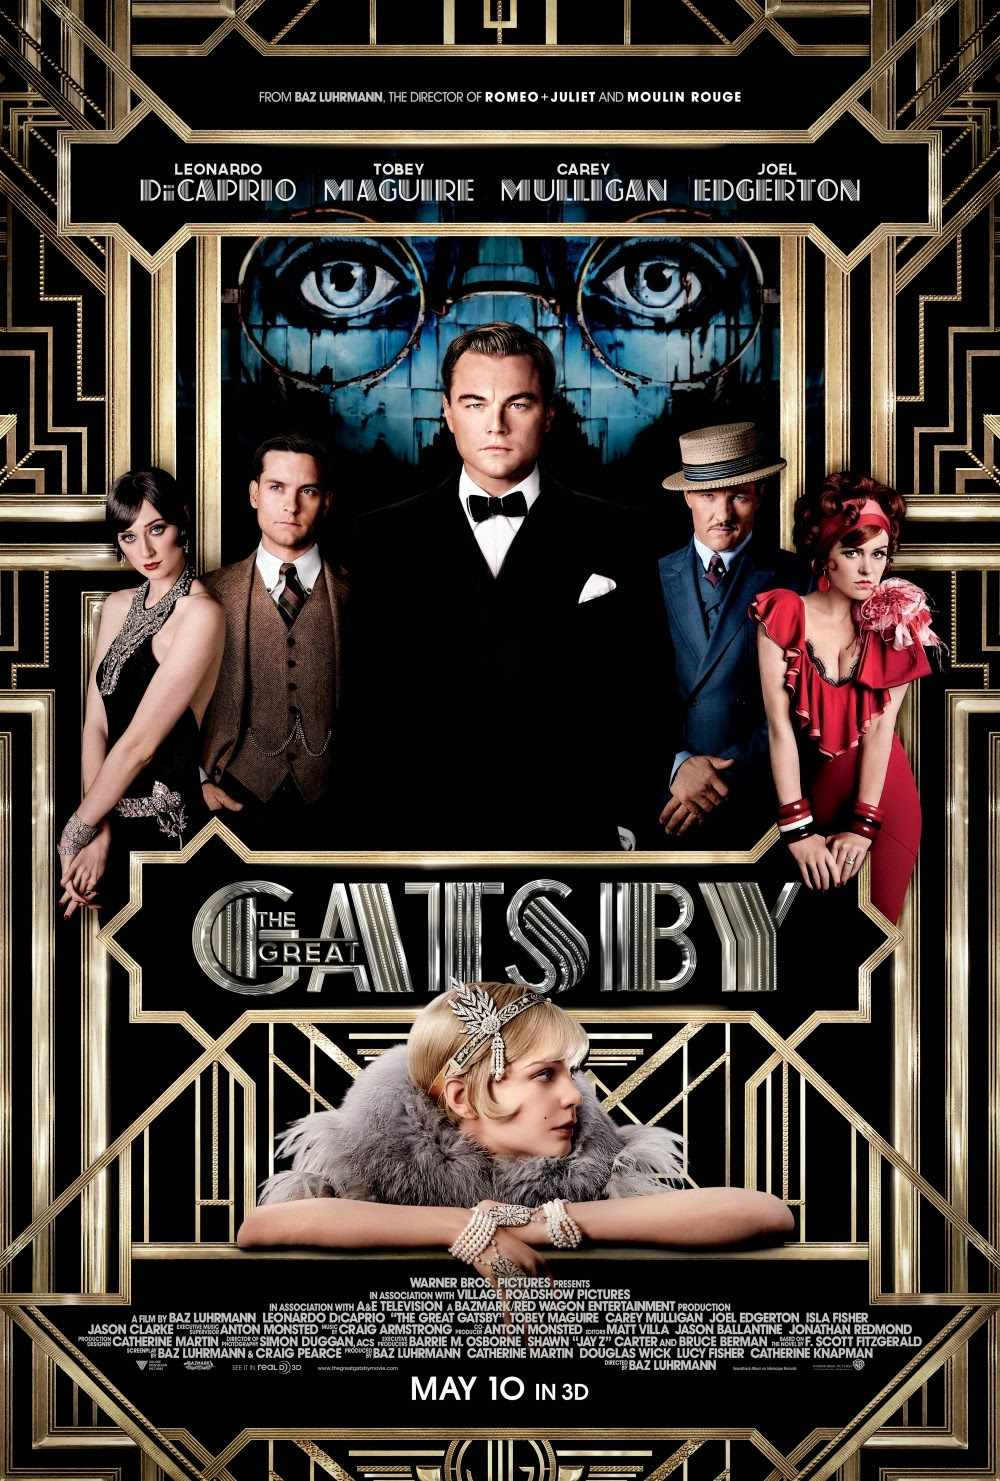 great gatsby film critique Film review: the great gatsby jay-z meets jay g in this hyperventilated version of f scott's eloquent novel about an enigmatic self-made millionaire—the film isn't for purists, but baz should generate a buzz with young audiences.